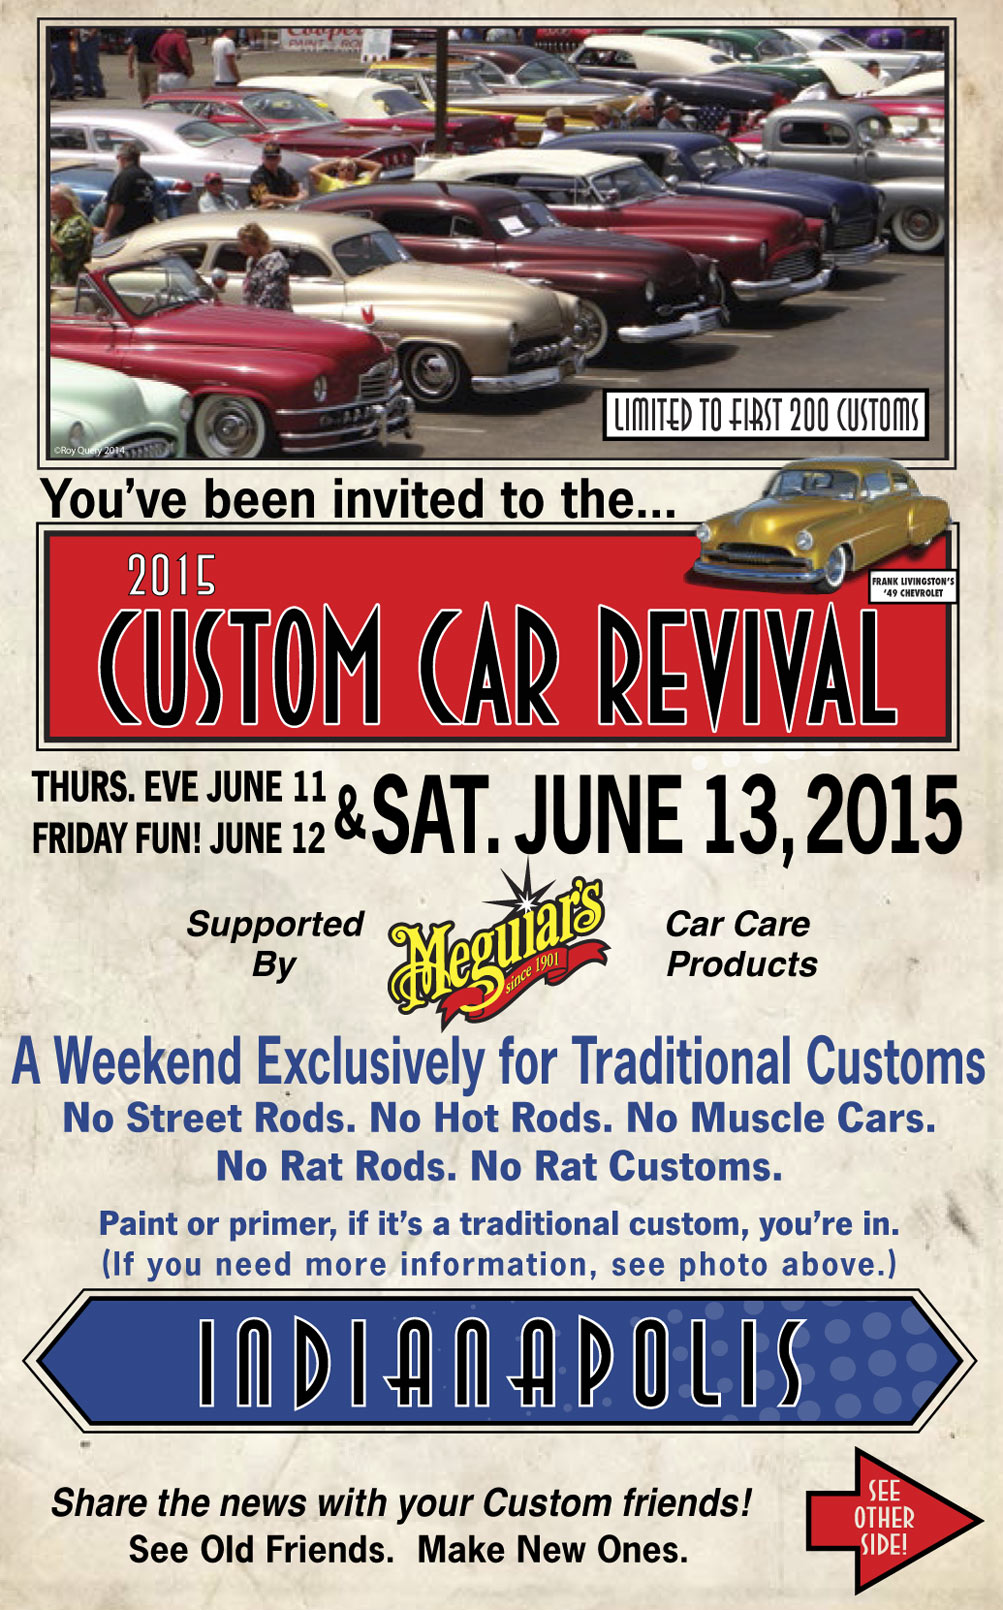 CCC-2015-custom-car-revival-01